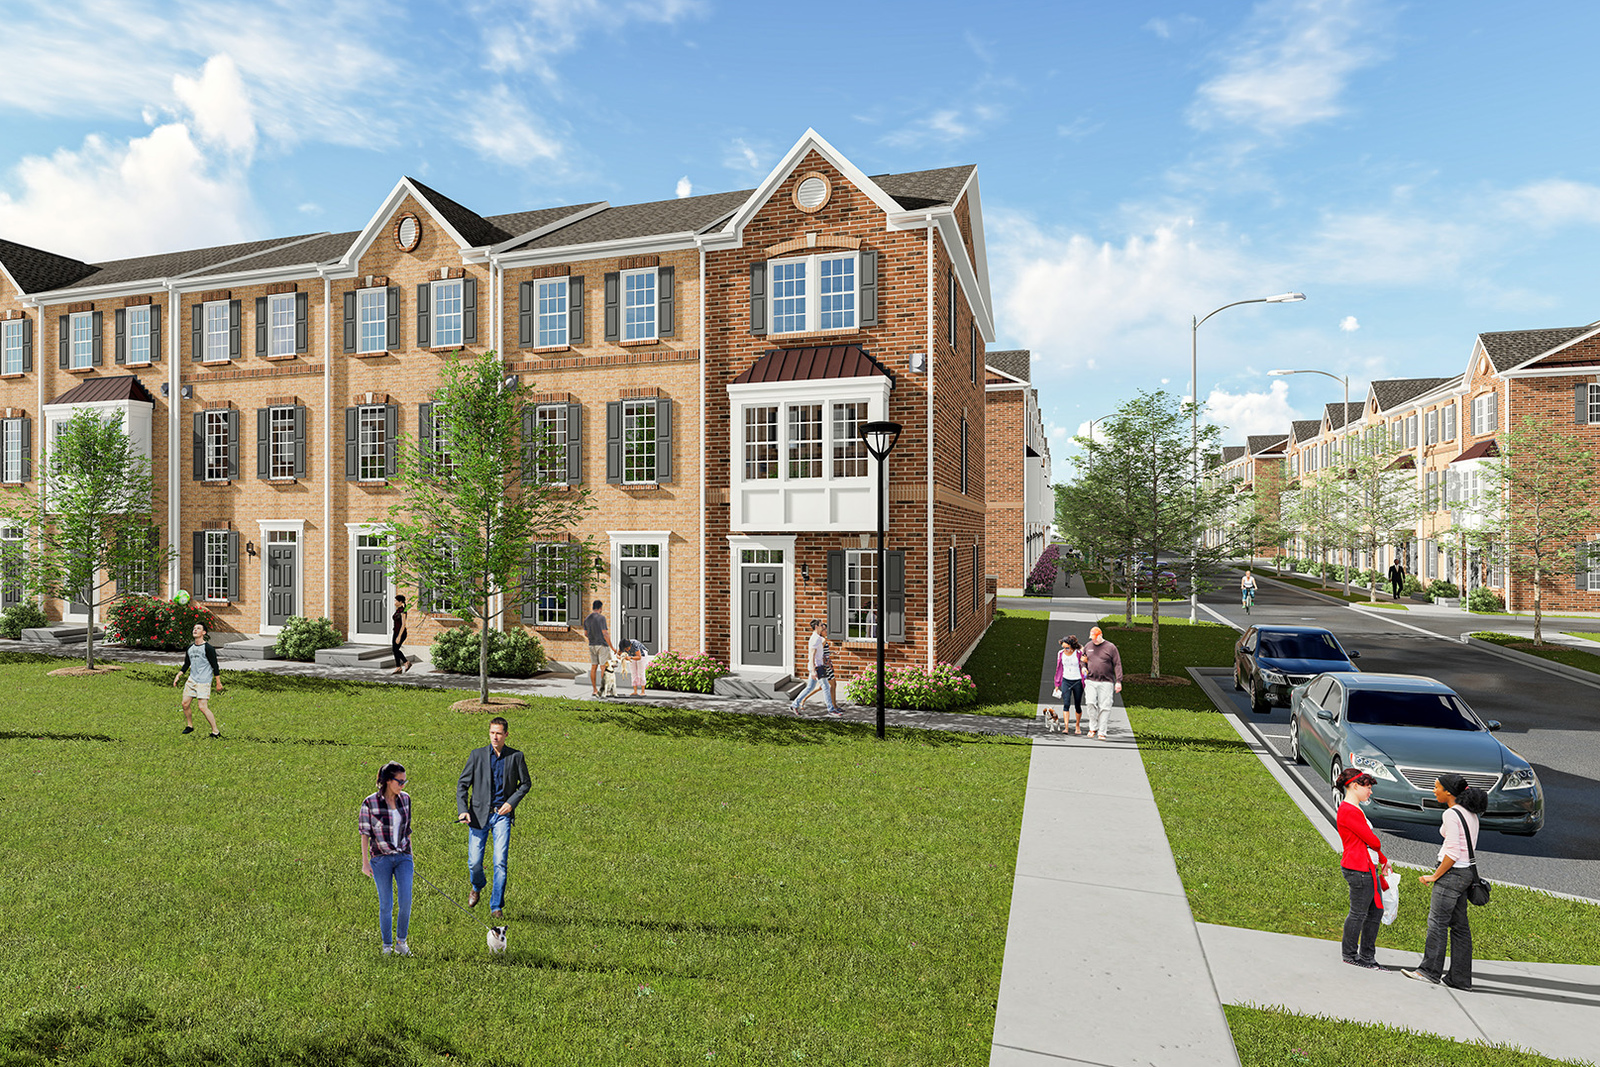 Baltimores Newest Community With Plenty Of Parking Open Green Space And The Spacious Home You